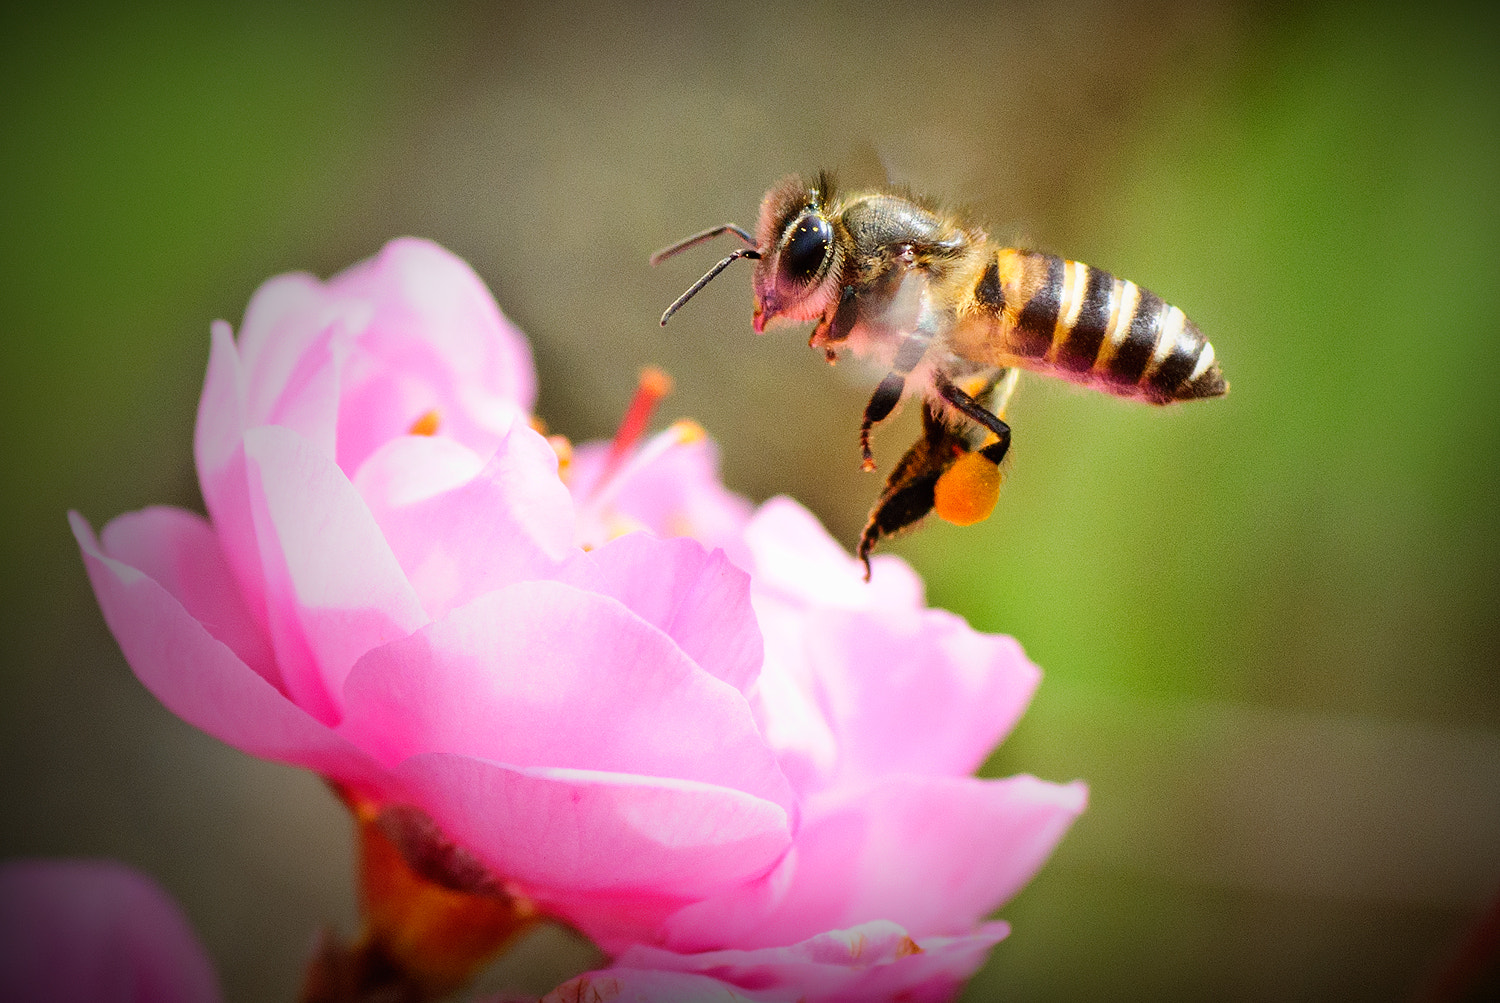 Photograph Bee with Peach Blossom by JAKKRIT IMLIMTHAN on 500px